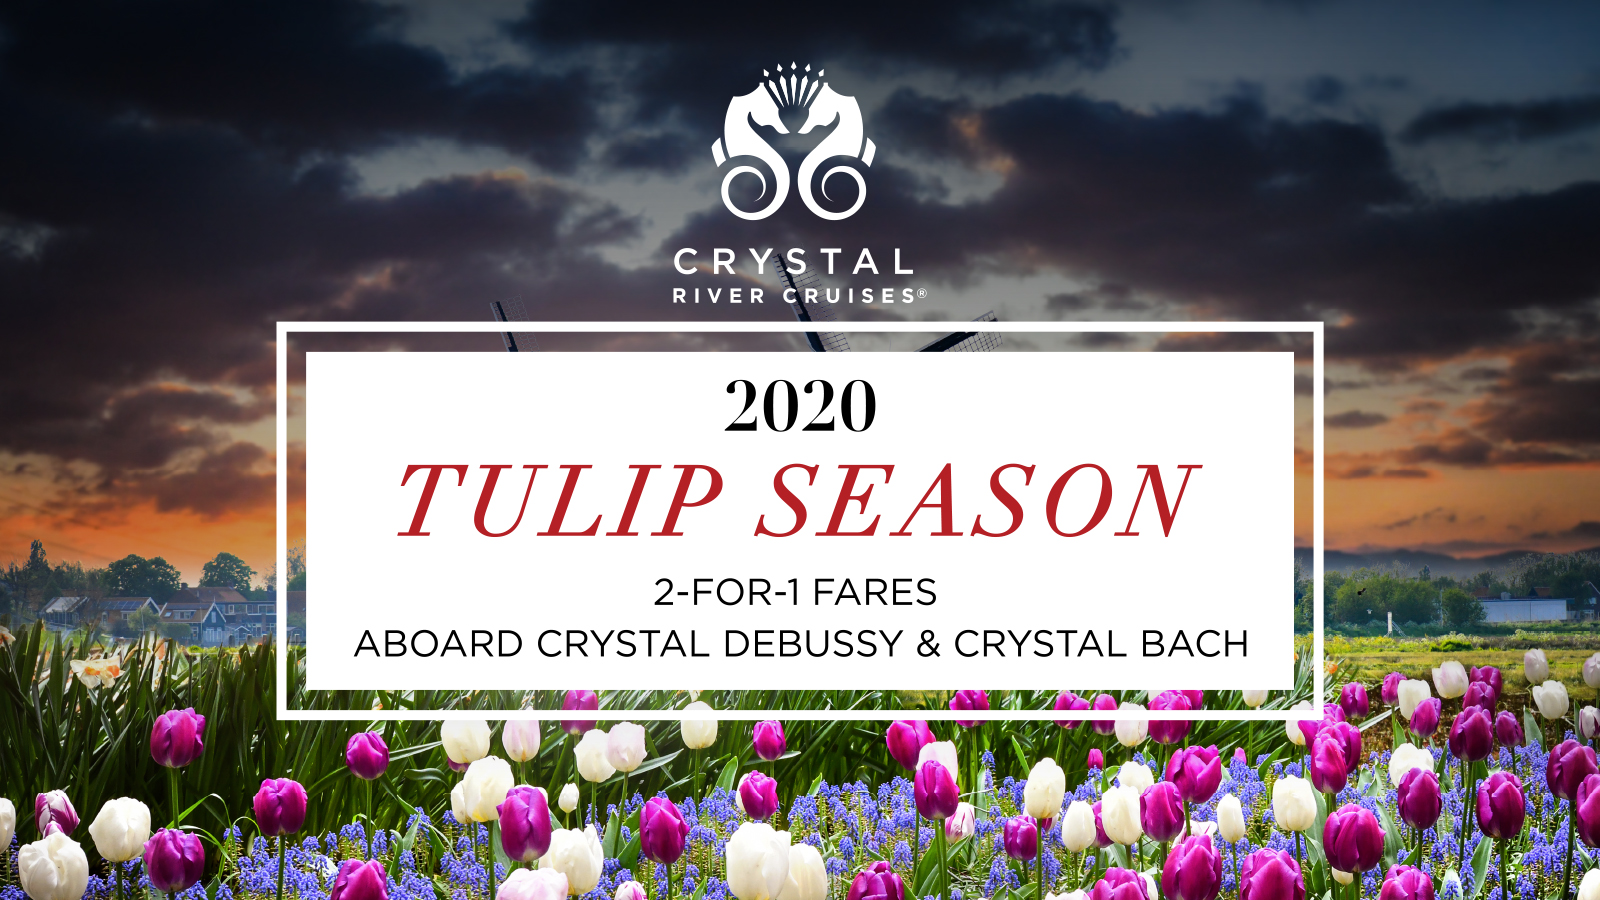 Crystal River 2020 Tulip Season 2-FOR-1 FARES Aboard Crystal DEBUSSY & Crystal BACH